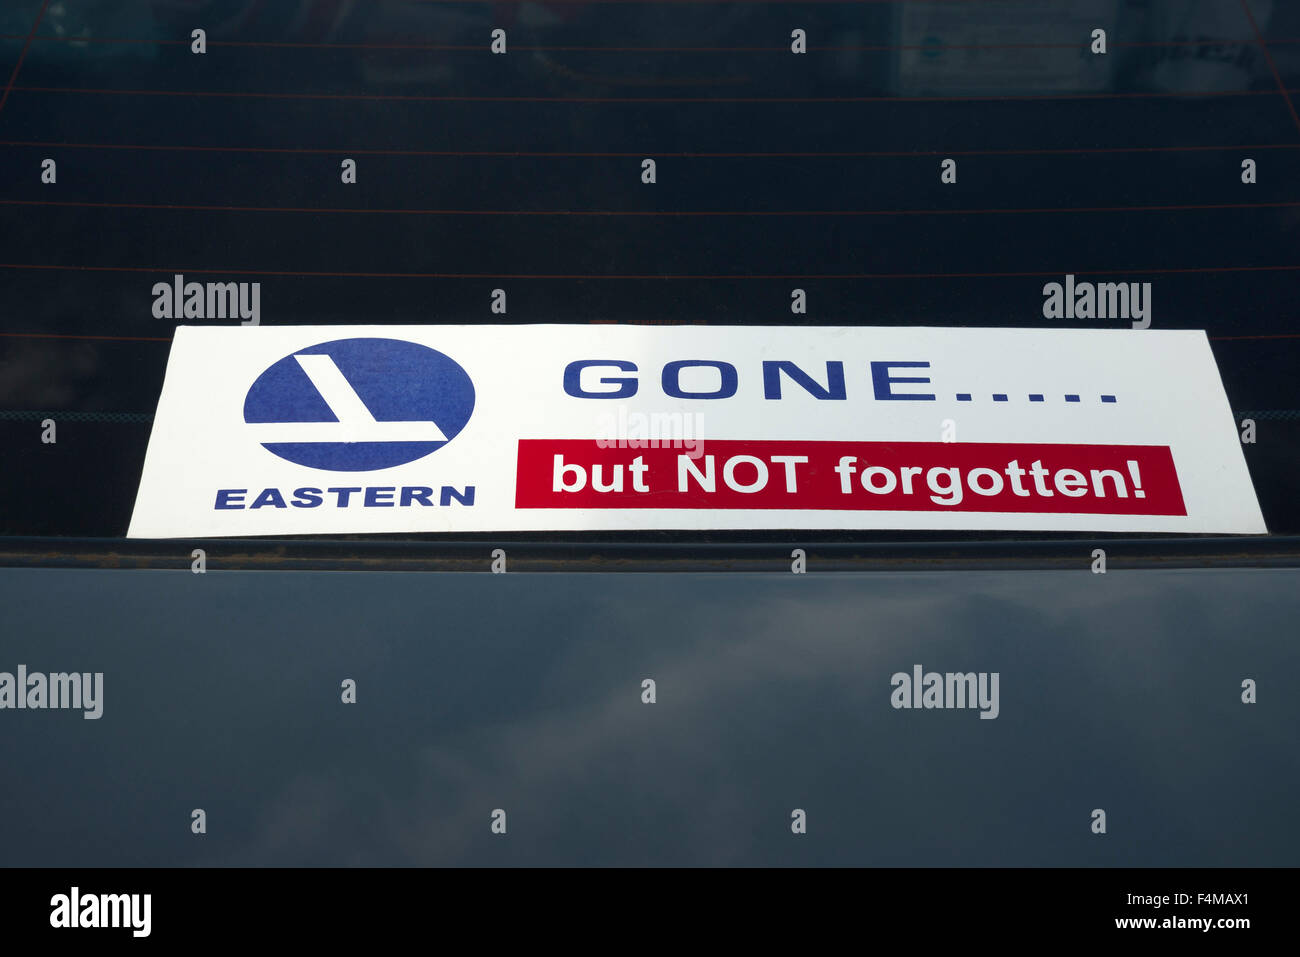 Eastern Airlines gone but not forgotten sticker in the rear windshield of an Eastern retiree's automobile. - Stock Image